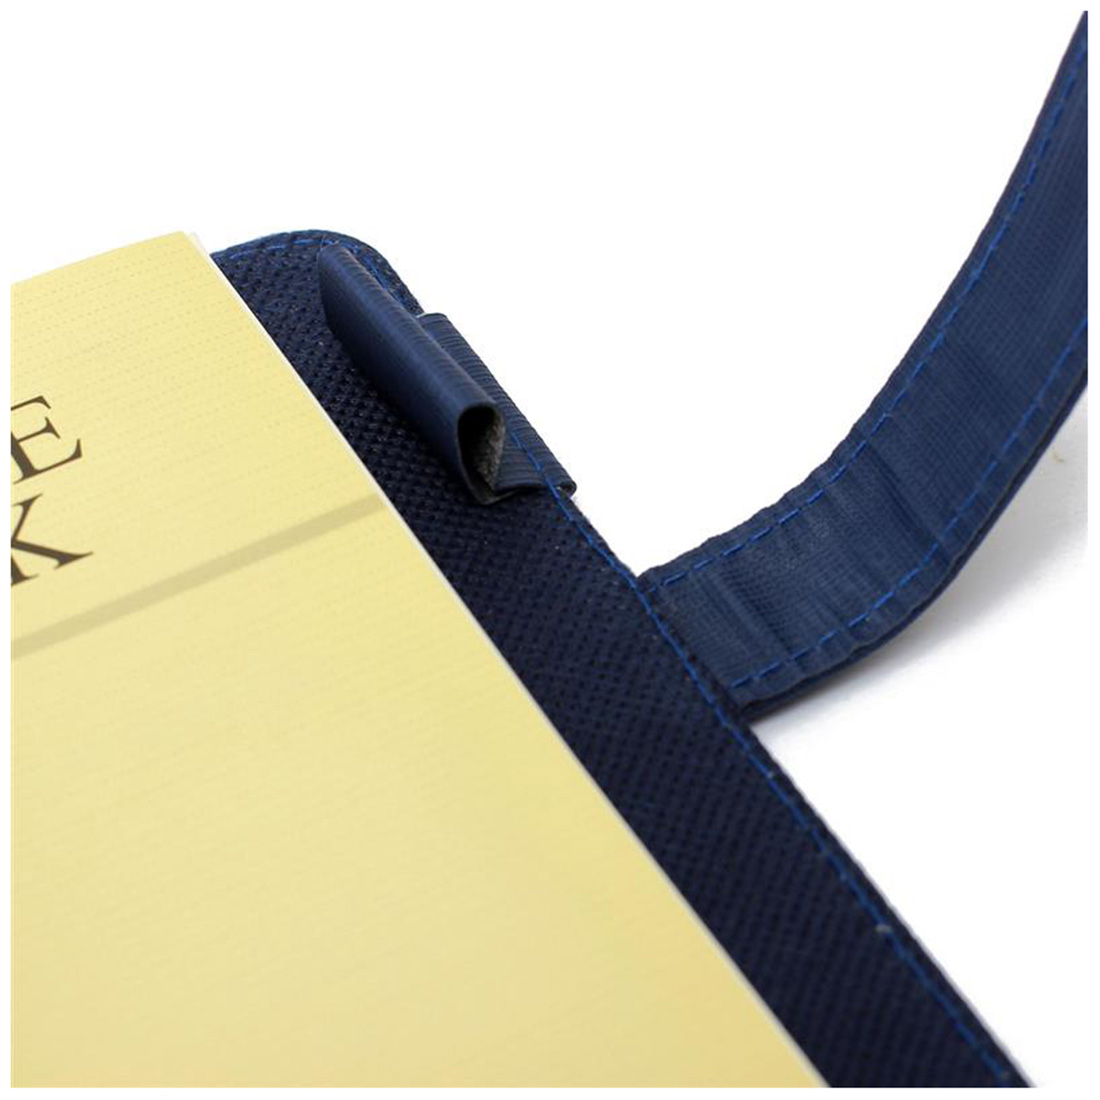 BLEL Modern Design A7 Personal Organiser Planner PU Leather Cover Diary Notebook School Office Stationery (Blue) modern design a7 personal organiser planner pu leather cover diary notebook school office stationery black